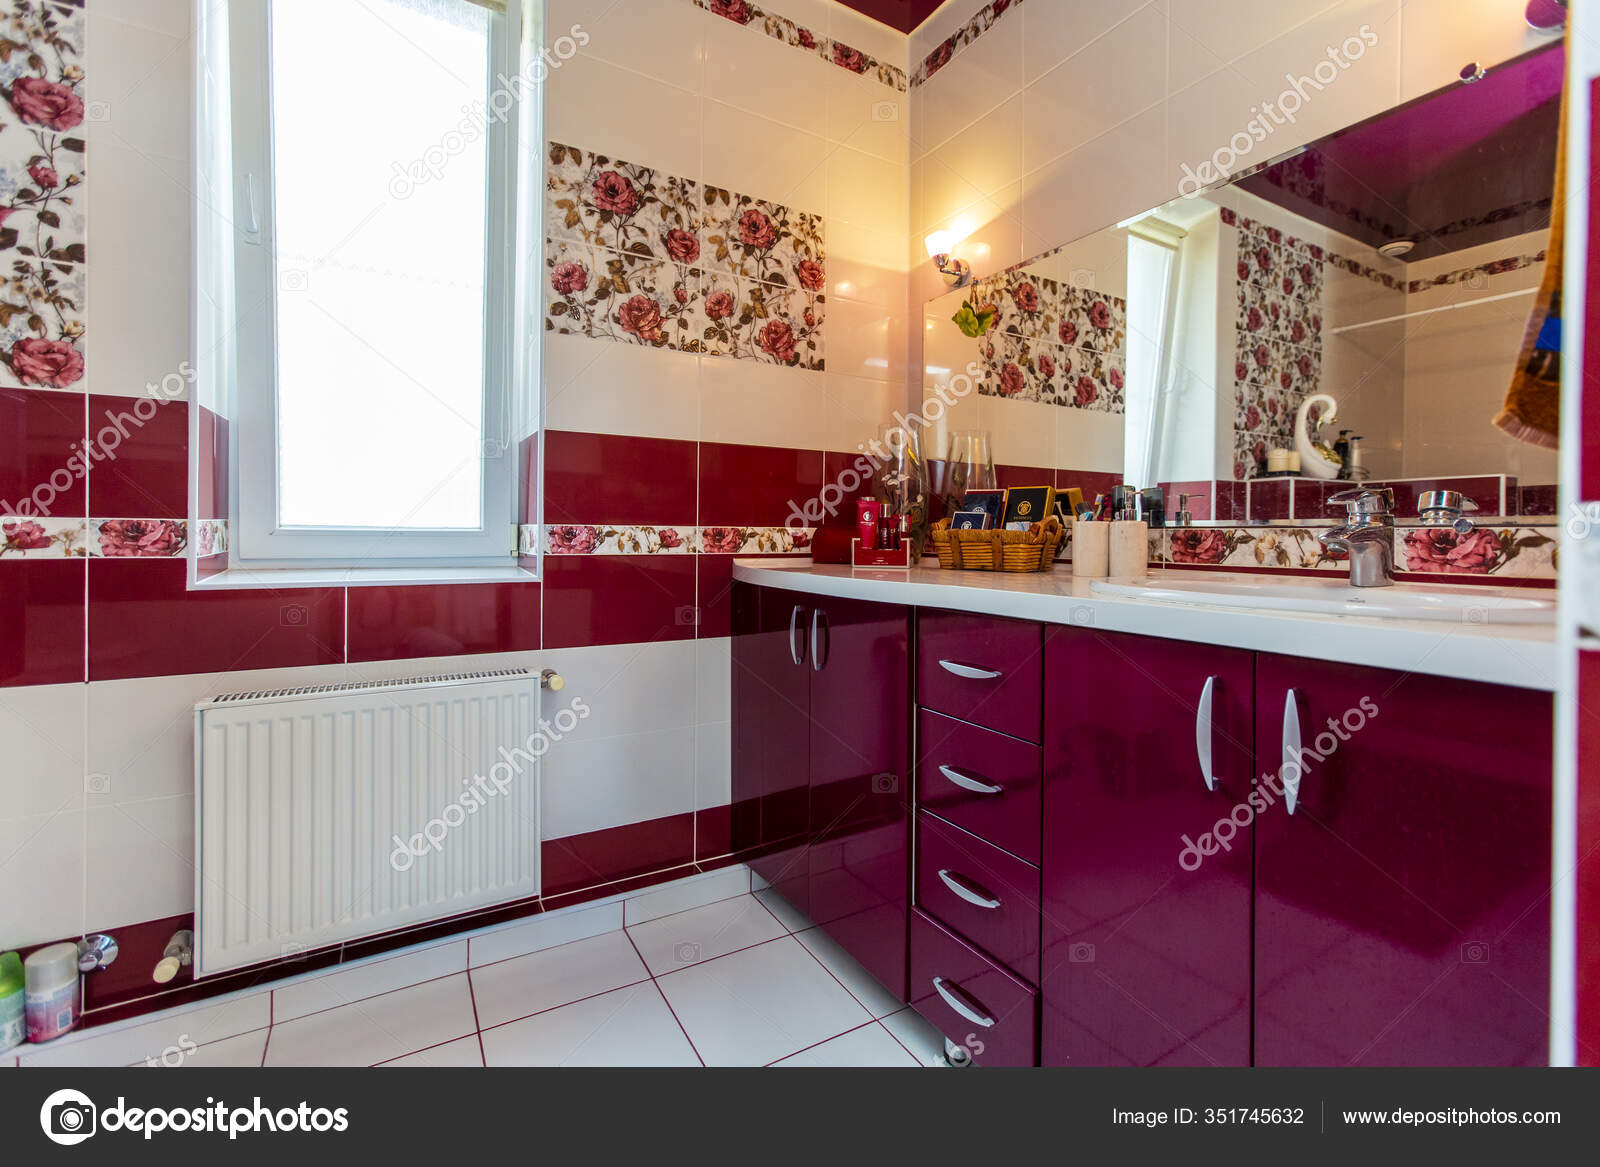 Large Bathroom In The Cottage In Red And White Colors Maroon And White Tiles Tiles With Red Colors Toilet Shower White And Maroon Tiles On The Floor Stock Photo C Ant Ref Mail Ru